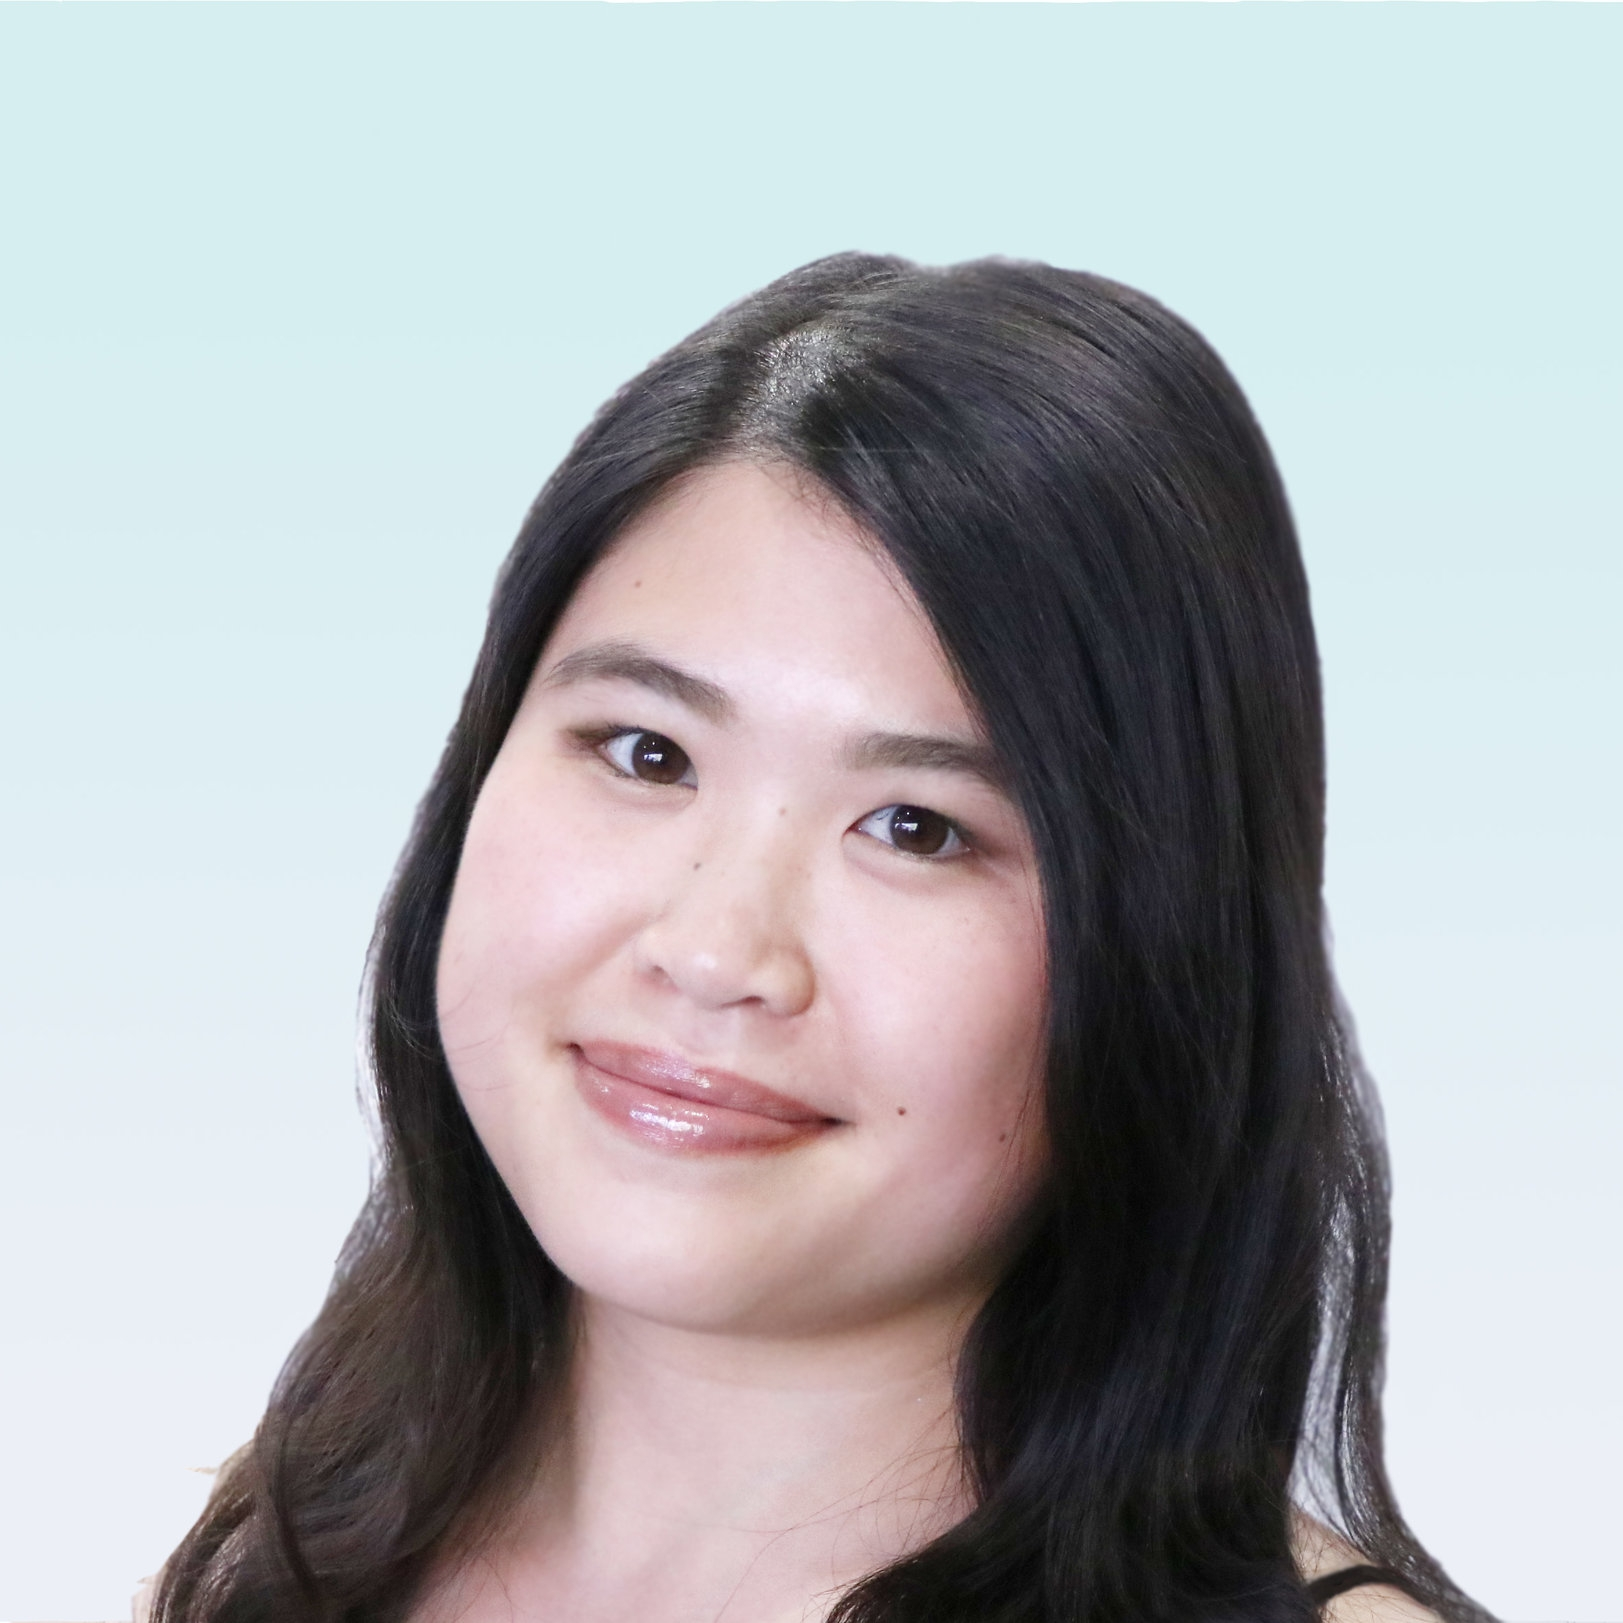 CONTESTANT #3  BARBARA WONG  Sponsored by  媽媽樂